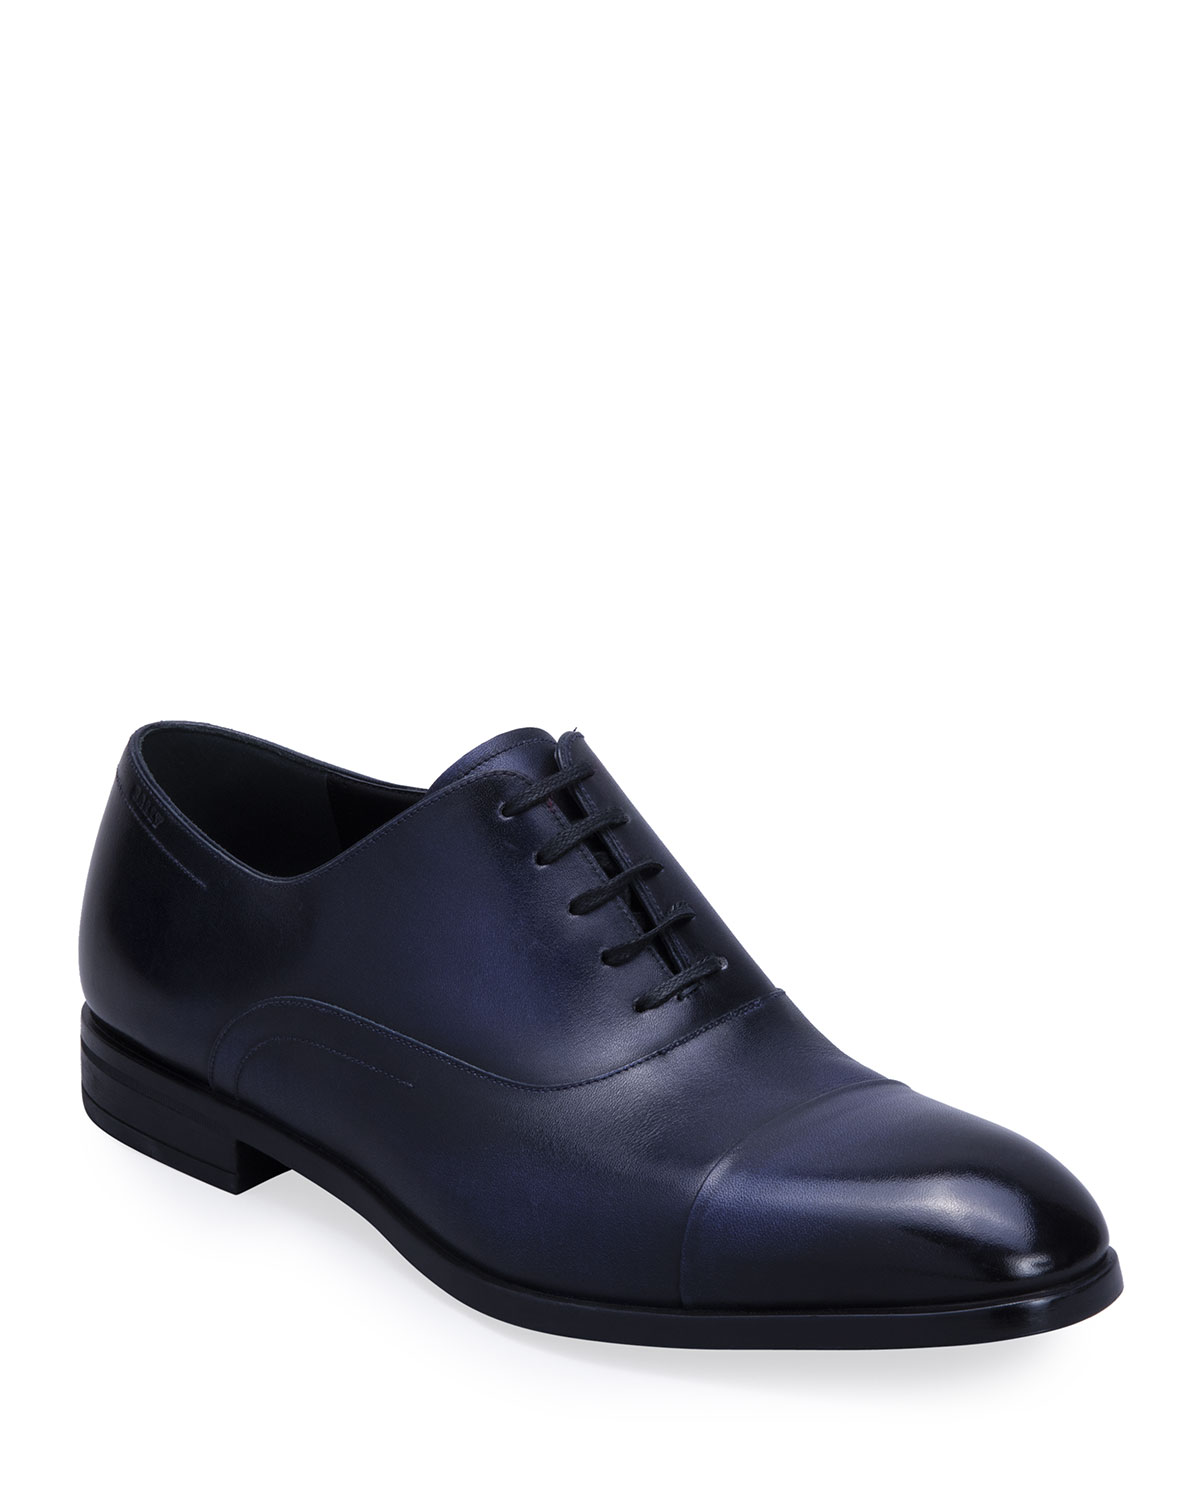 Bally MEN'S LIZZAR CALFSKIN CAP-TOE OXFORDS